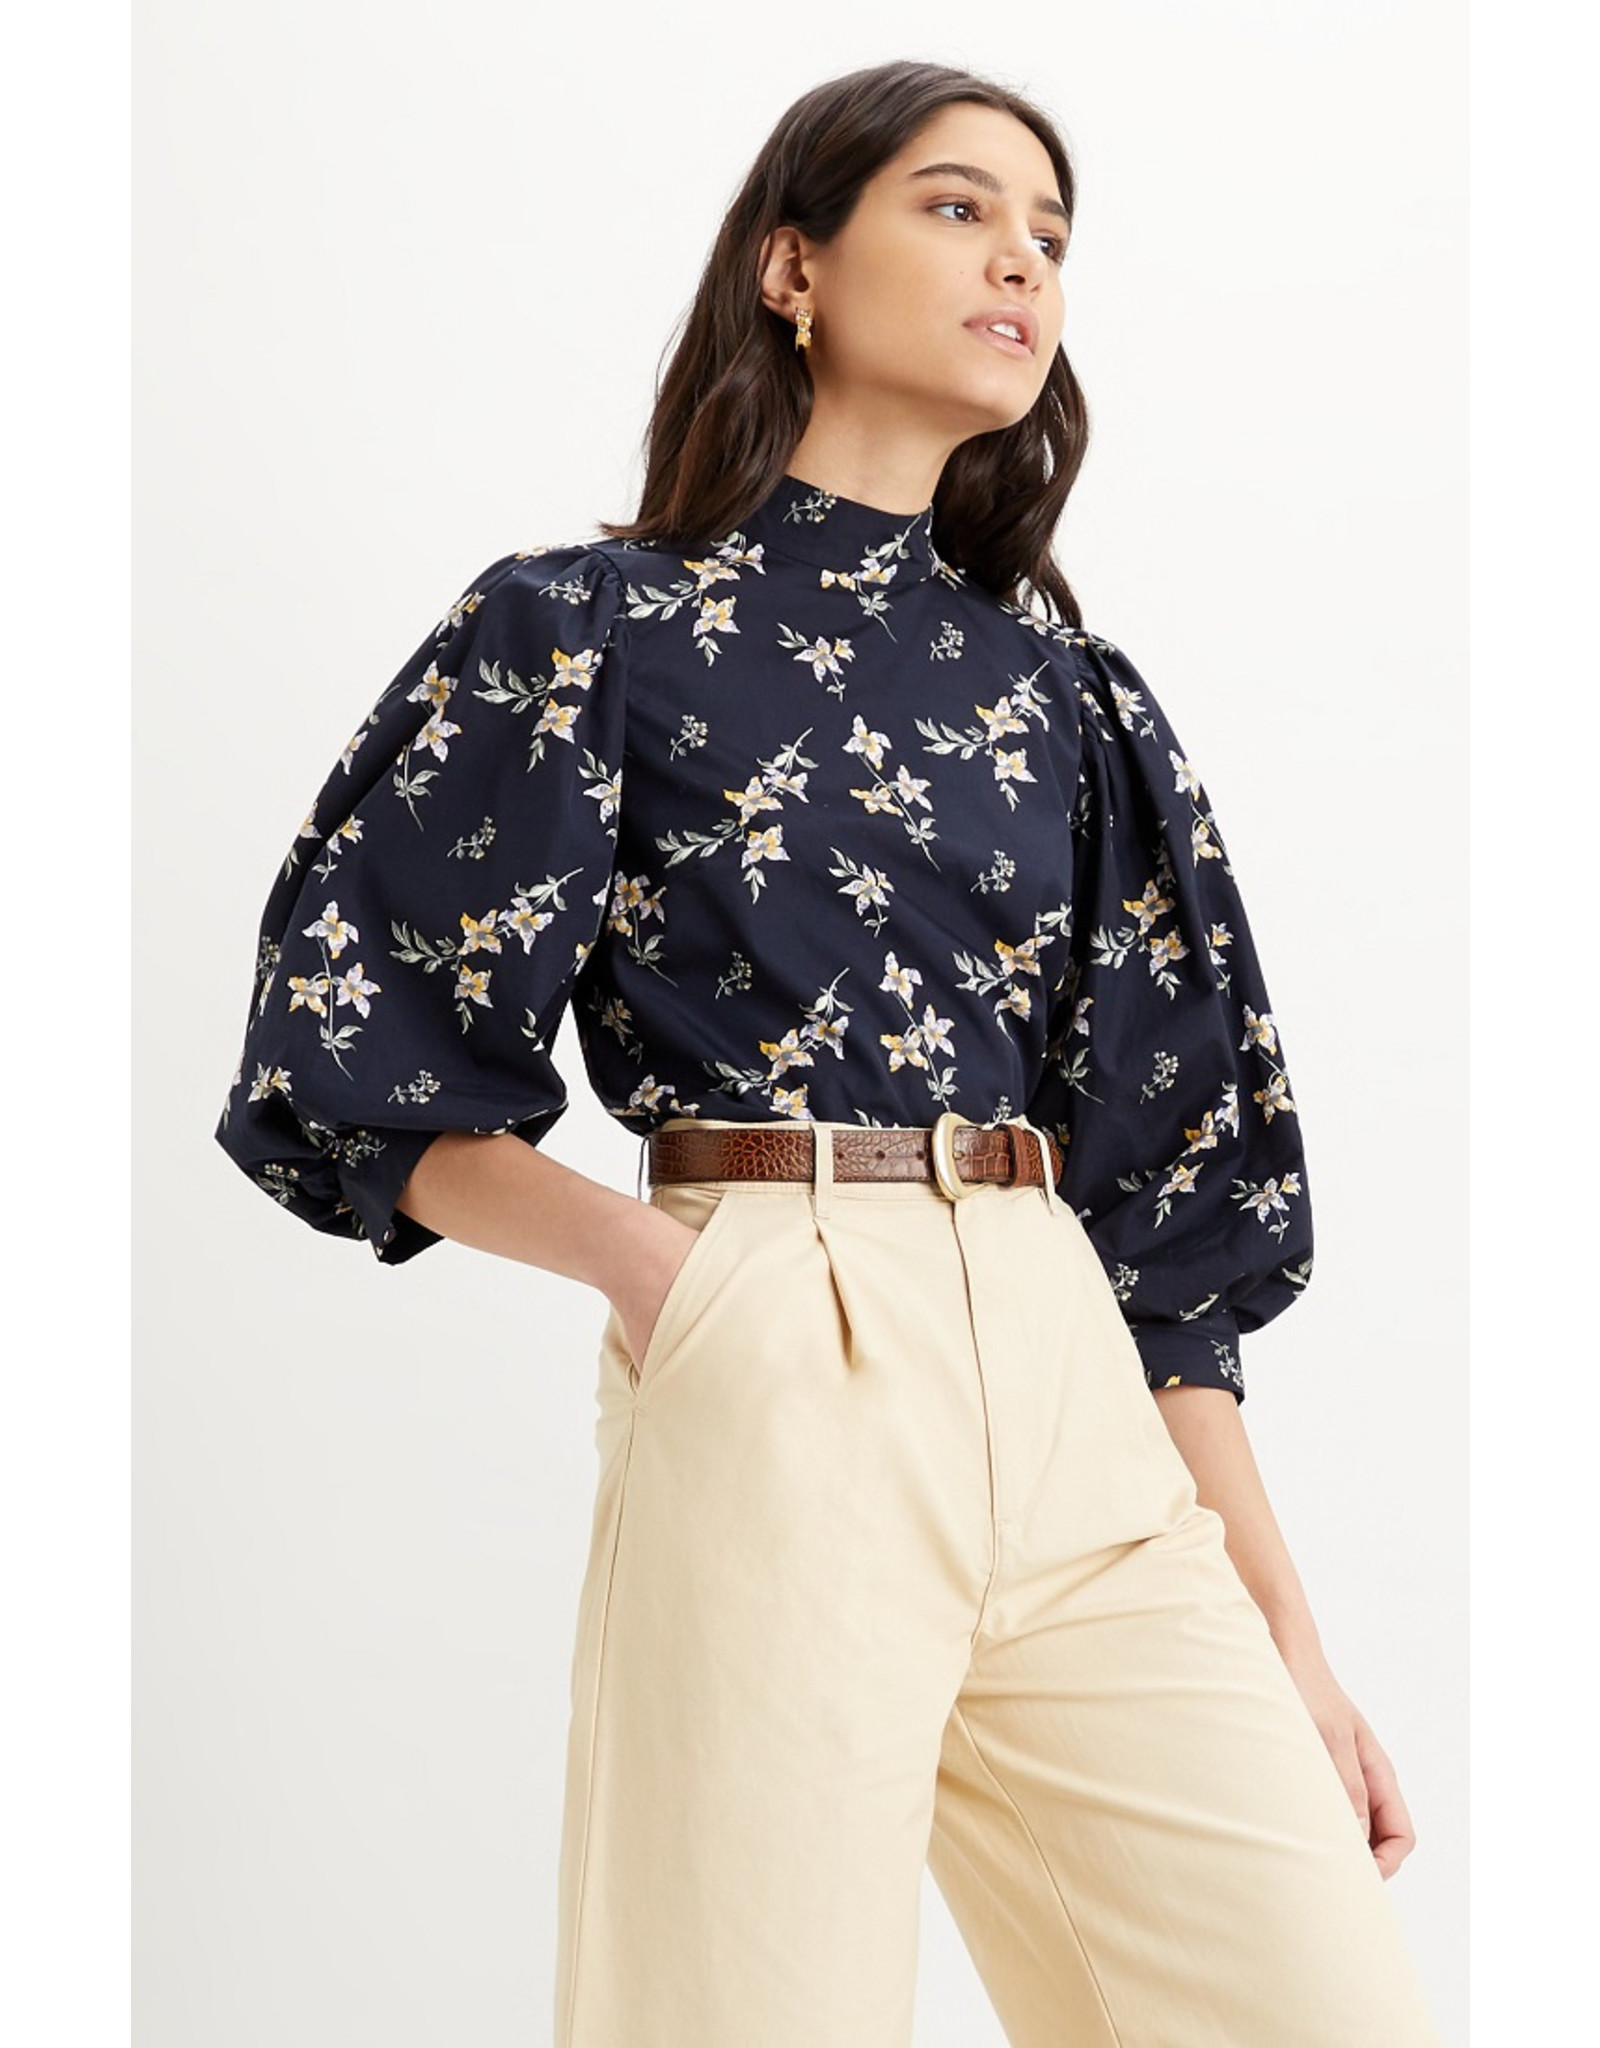 Levi's Posey Blouse